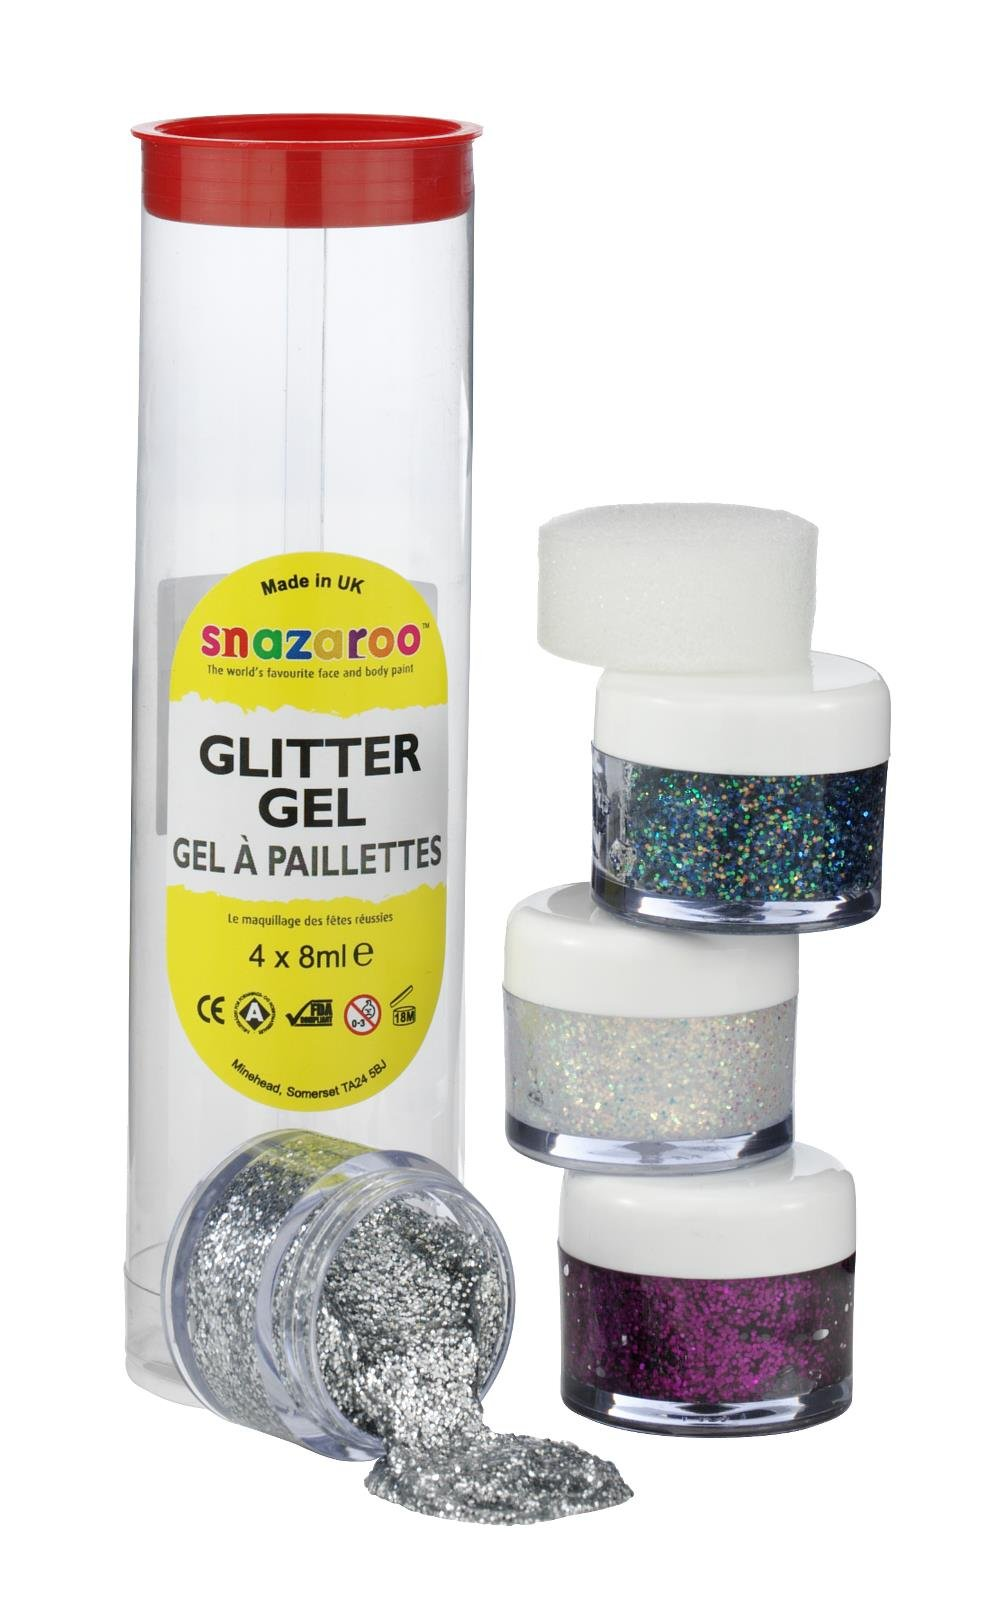 Snazaroo Face And Body Paint, Glitter Gel, Tube A, Assorted, 4 x 8ml